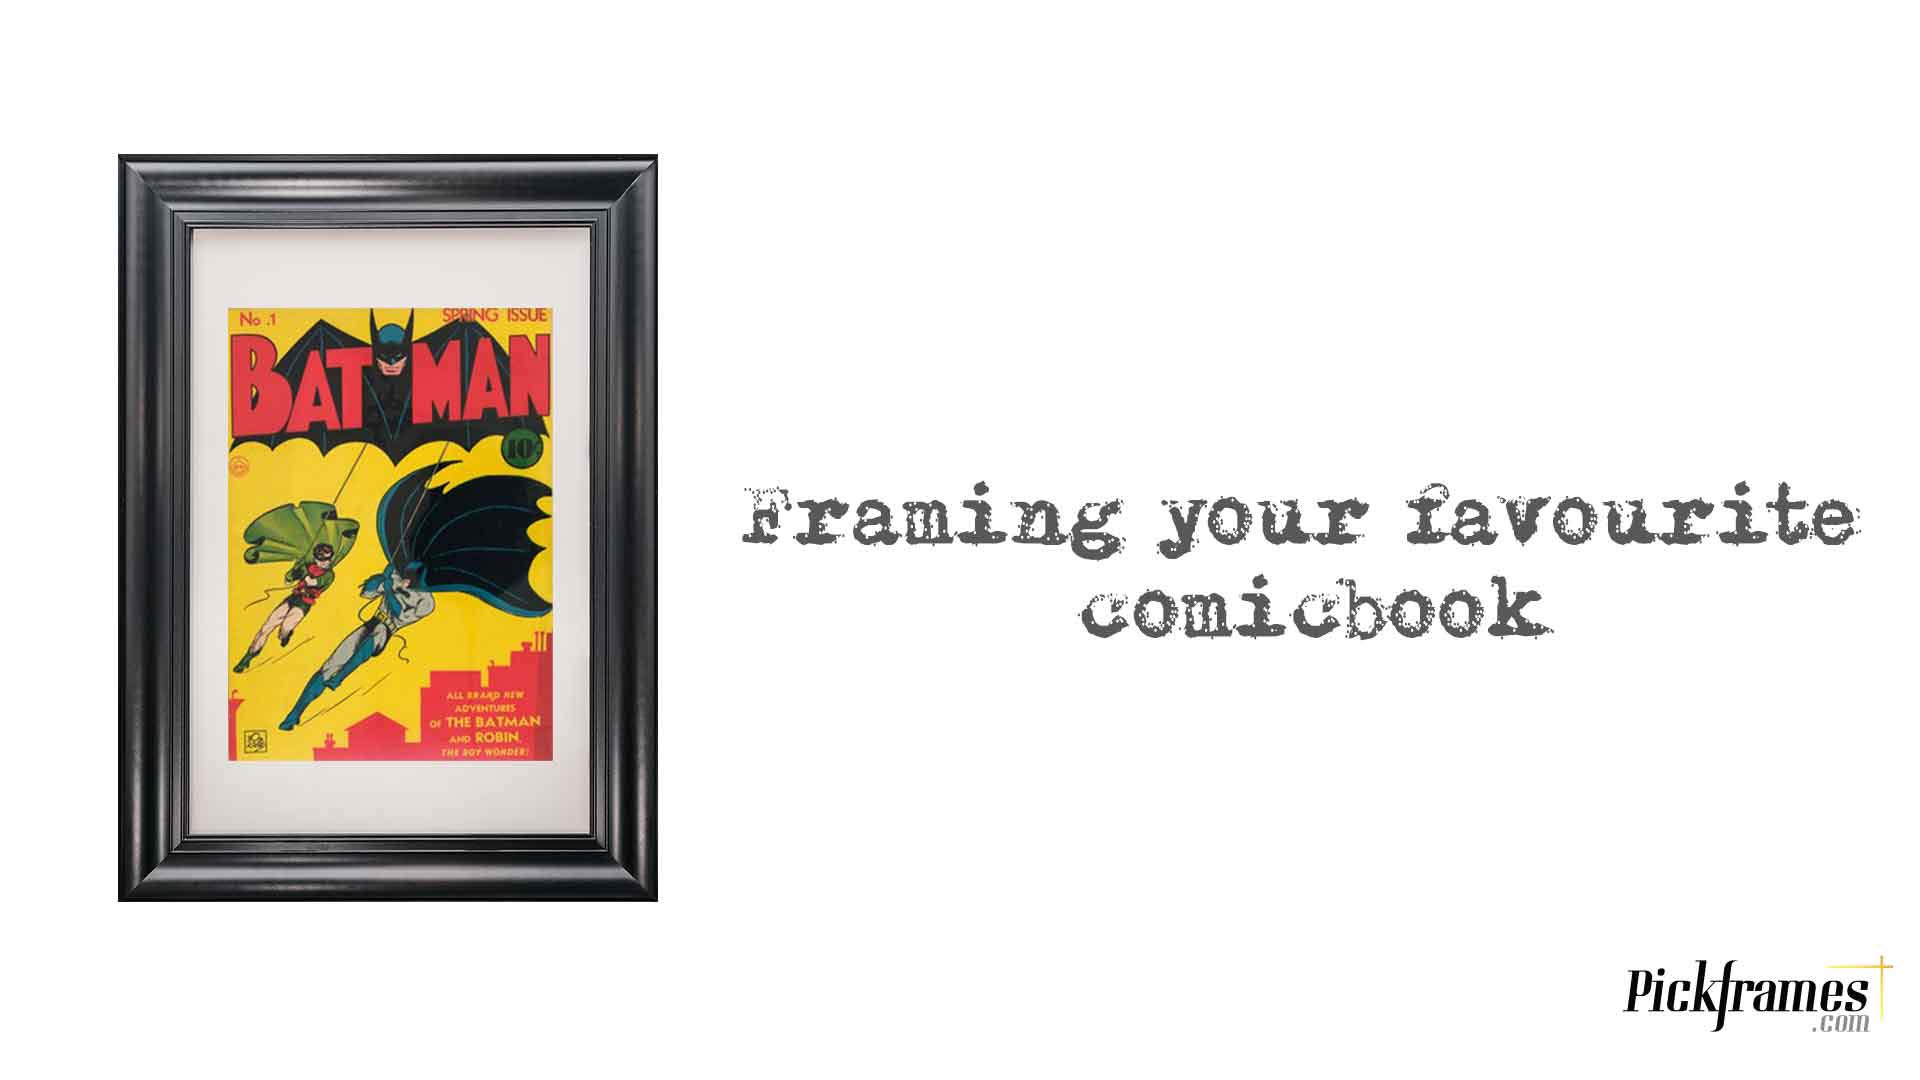 Framing Comic Books with frames in Dubai